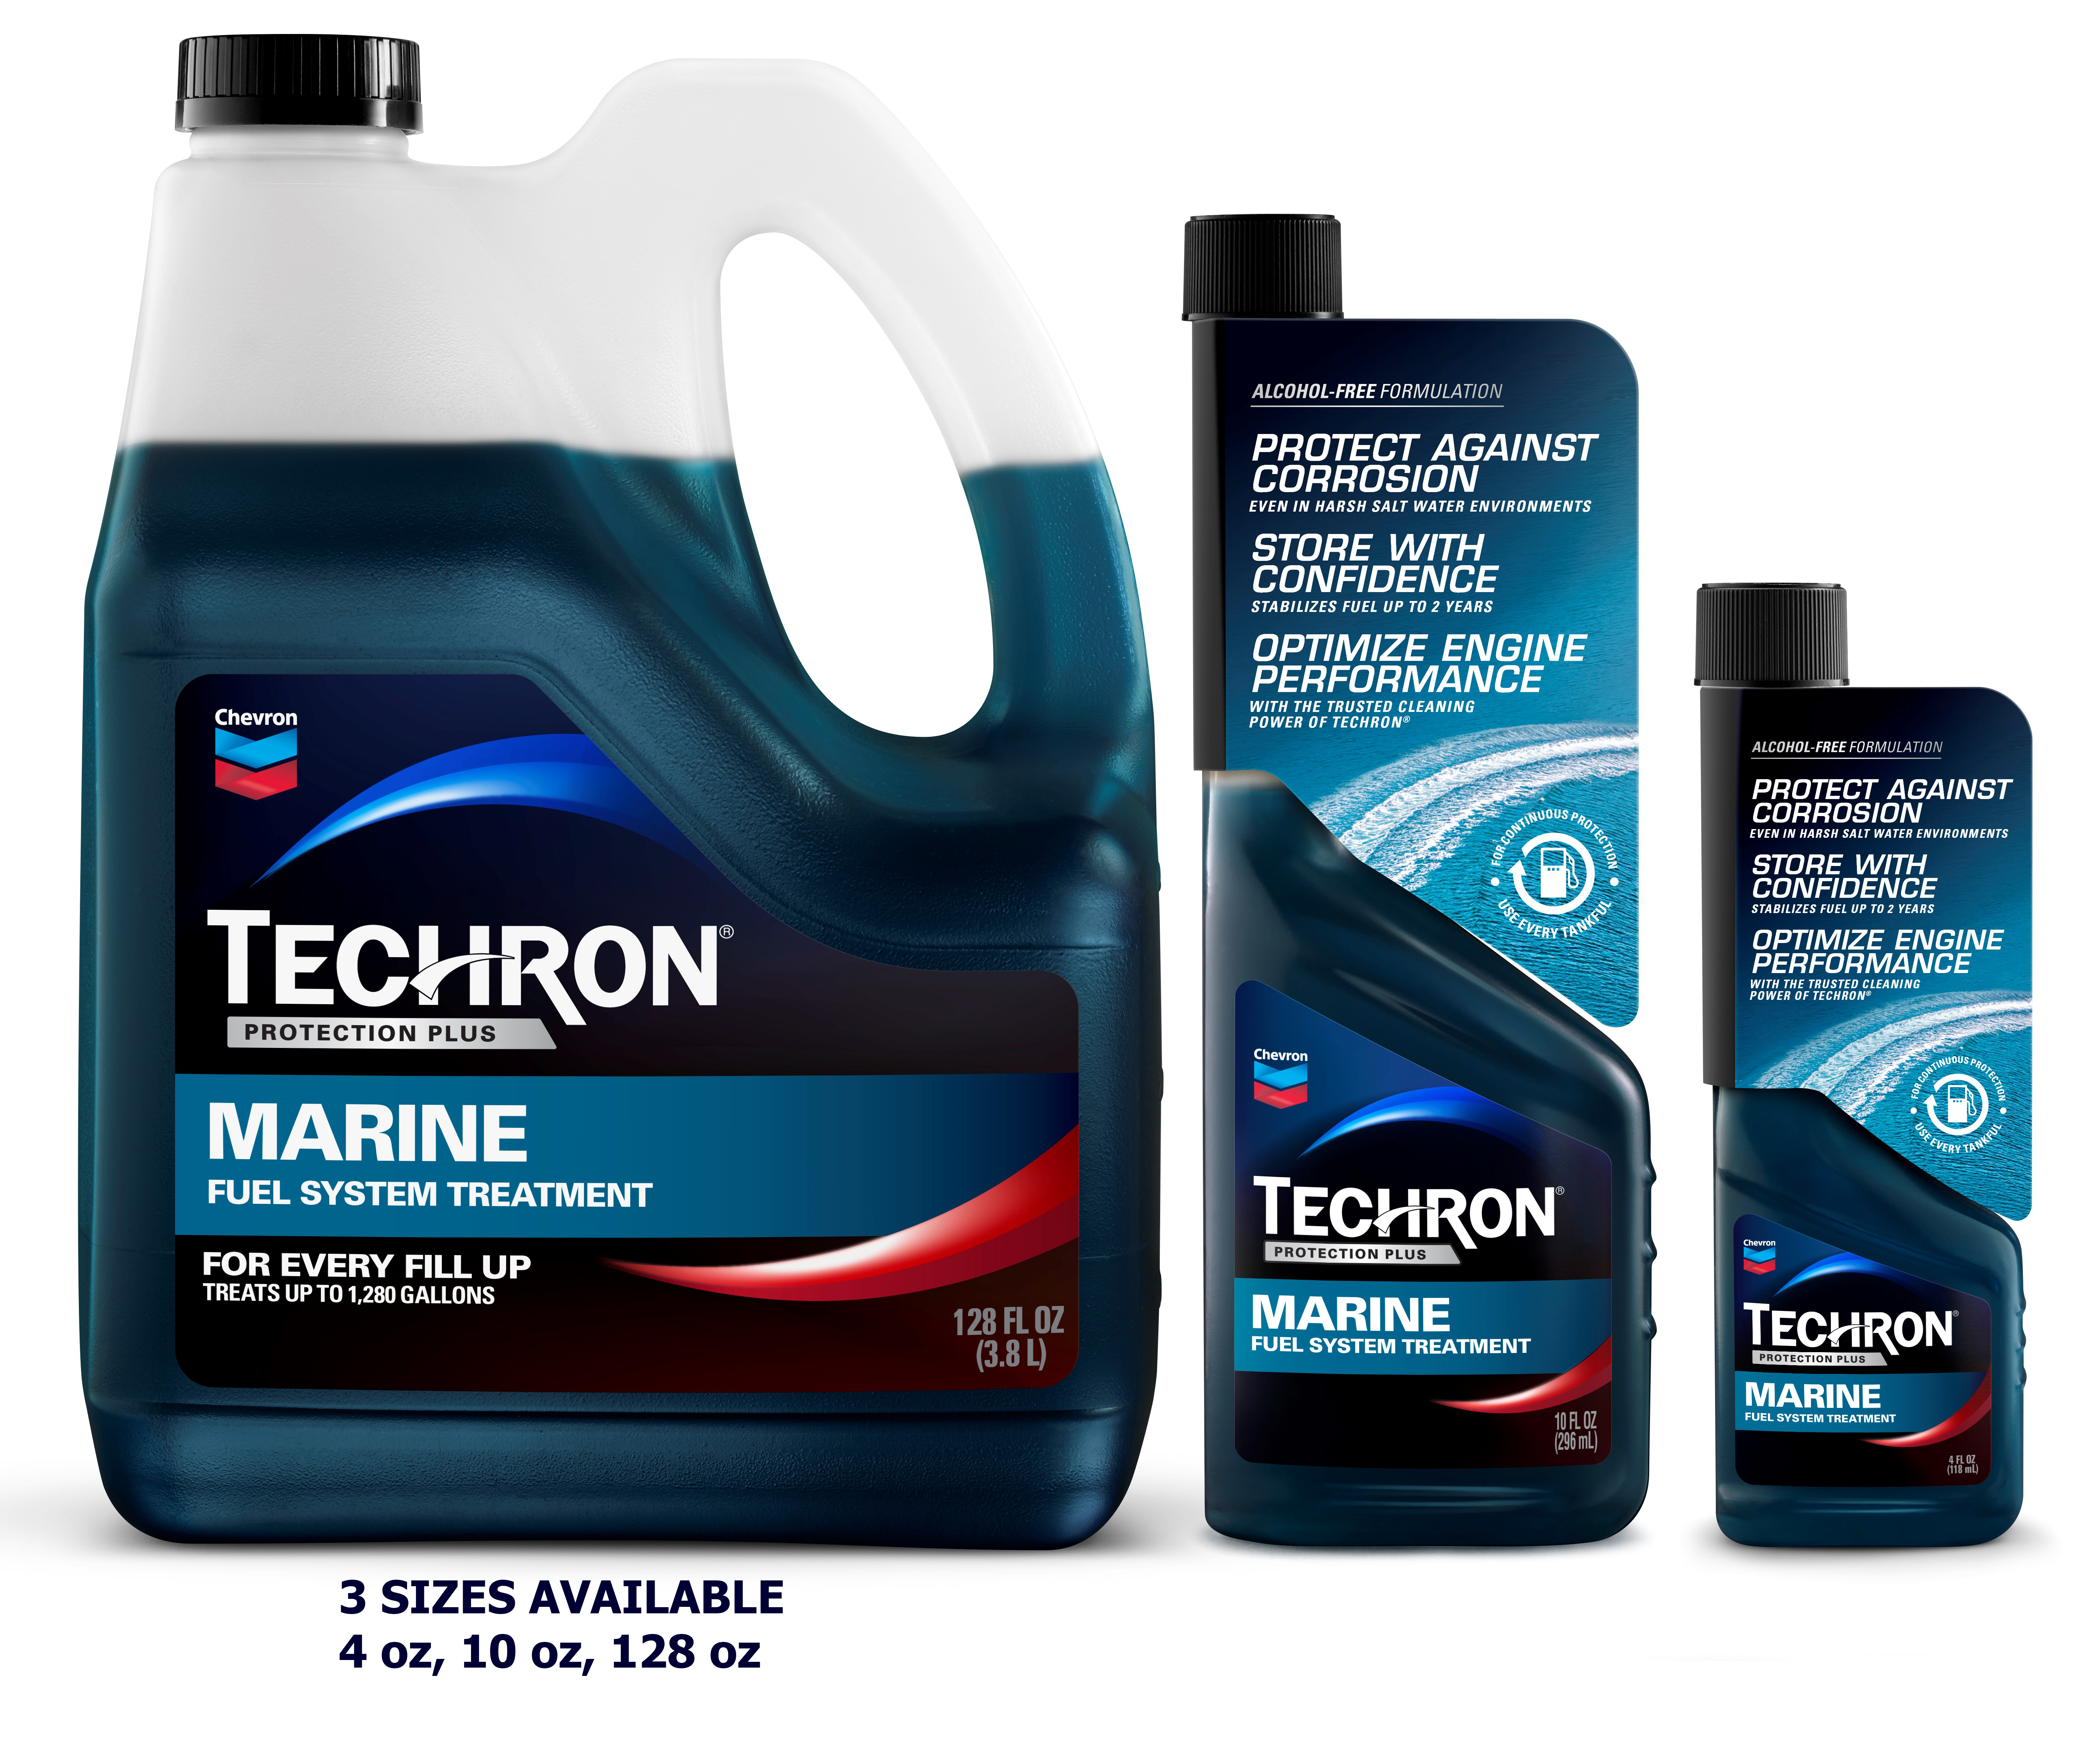 Techron Protection Plus Marine Fuel System Treatment